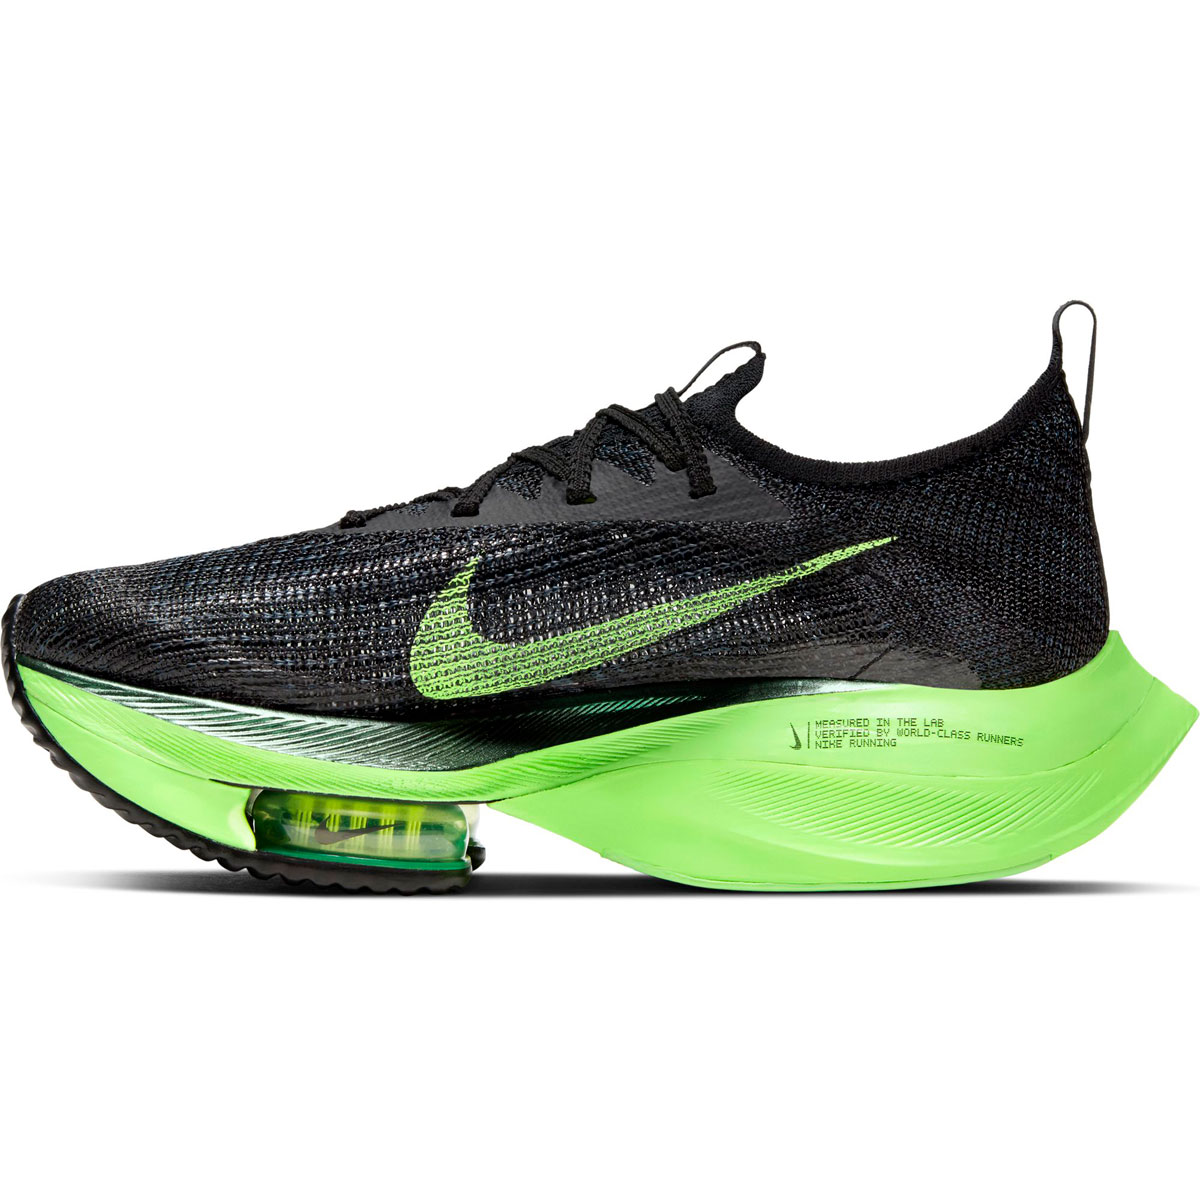 Women's Nike Air Zoom Alphafly Next% Running Shoe - Color: Black/Lime Blast - Size: 5 - Width: Regular, Black/Lime Blast, large, image 2